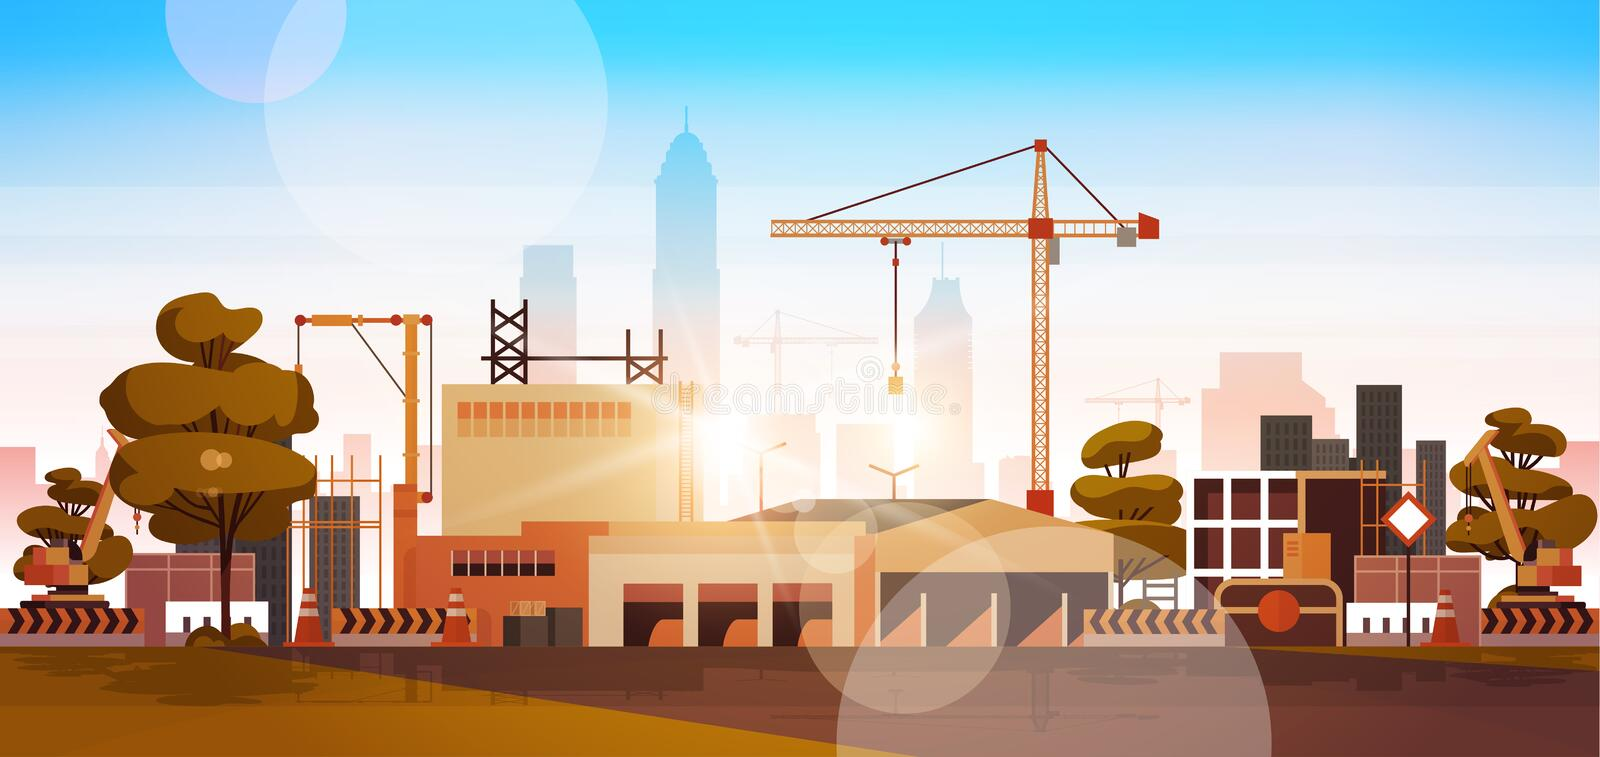 Modern city construction site tower cranes building residential buildings cityscape sunset skyline background flat. Horizontal banner vector illustration vector illustration